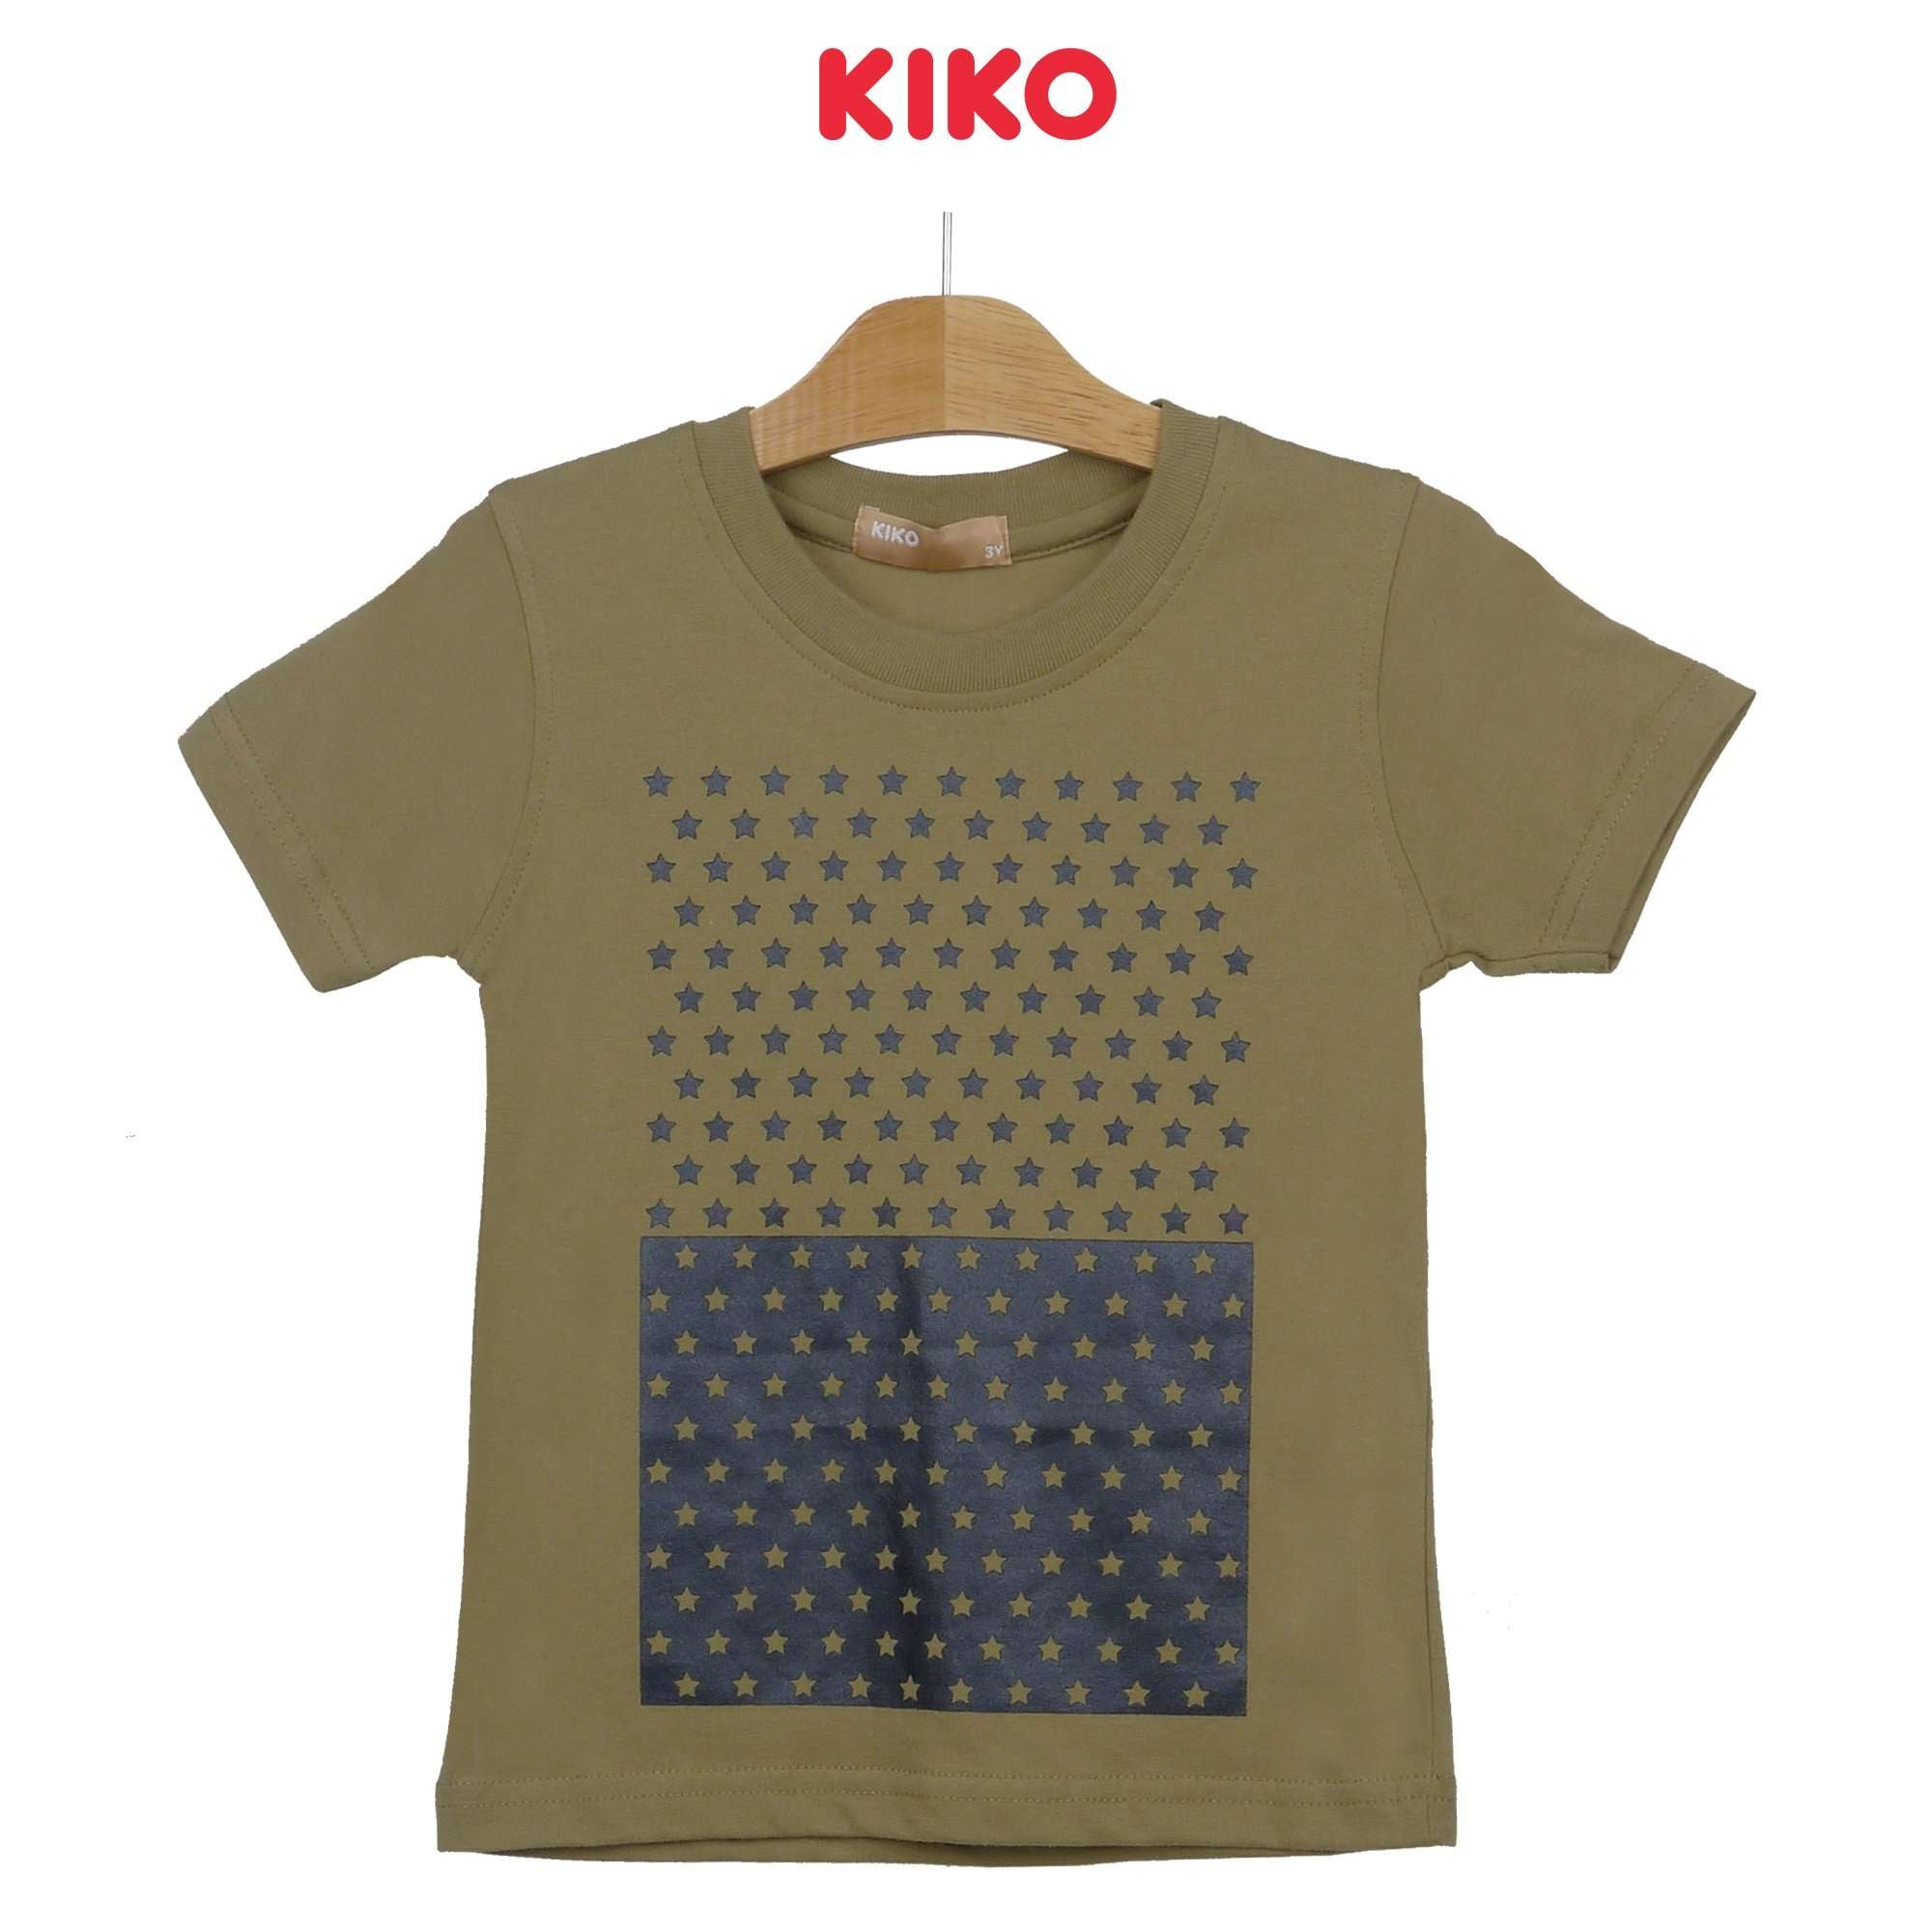 KIKO Boy Round Neck Short Sleeve Tee 121249-114 : Buy KIKO online at CMG.MY